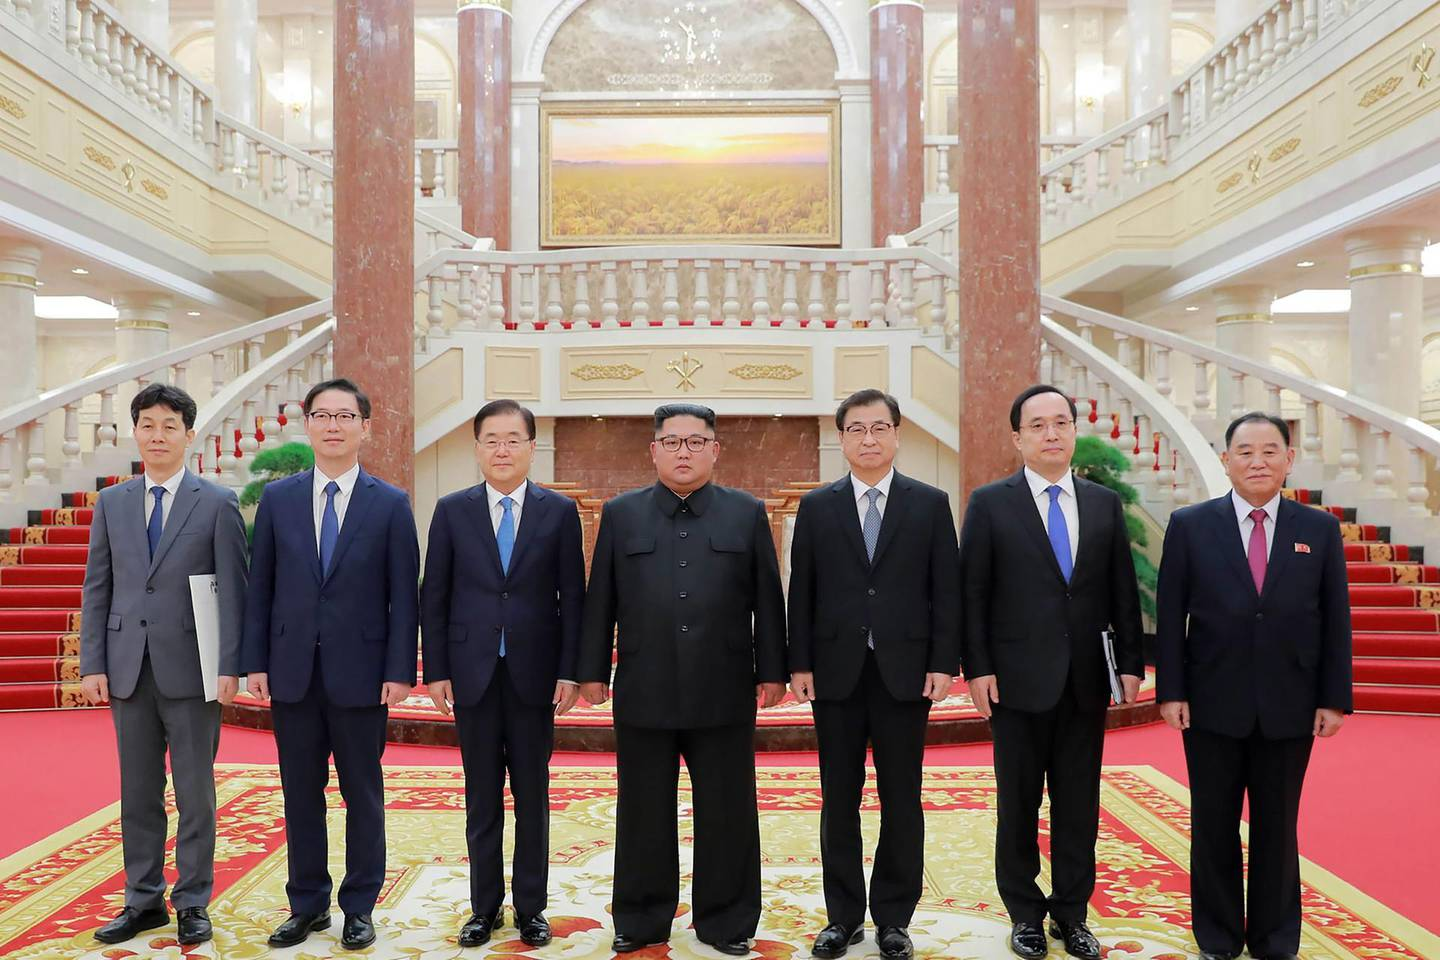 """This picture from North Korea's official Korean Central News Agency (KCNA) taken on September 5, 2018 and released on September 6, 2018 shows North Korean leader Kim Jong Un (C) posing for a picture with a delegation of South Korean president's special envoy, led by Chung Eui-yong (3rd L), in Pyongyang. - Kim Jong Un will meet the South's President Moon Jae-in at a summit in Pyongyang in September to discuss the nuclear disarmament, Seoul said on September 6. (Photo by KCNA VIA KNS / KCNA VIA KNS / AFP) / South Korea OUT / REPUBLIC OF KOREA OUT   ---EDITORS NOTE--- RESTRICTED TO EDITORIAL USE - MANDATORY CREDIT """"AFP PHOTO/KCNA VIA KNS"""" - NO MARKETING NO ADVERTISING CAMPAIGNS - DISTRIBUTED AS A SERVICE TO CLIENTS THIS PICTURE WAS MADE AVAILABLE BY A THIRD PARTY. AFP CAN NOT INDEPENDENTLY VERIFY THE AUTHENTICITY, LOCATION, DATE AND CONTENT OF THIS IMAGE. THIS PHOTO IS DISTRIBUTED EXACTLY AS RECEIVED BY AFP. /"""